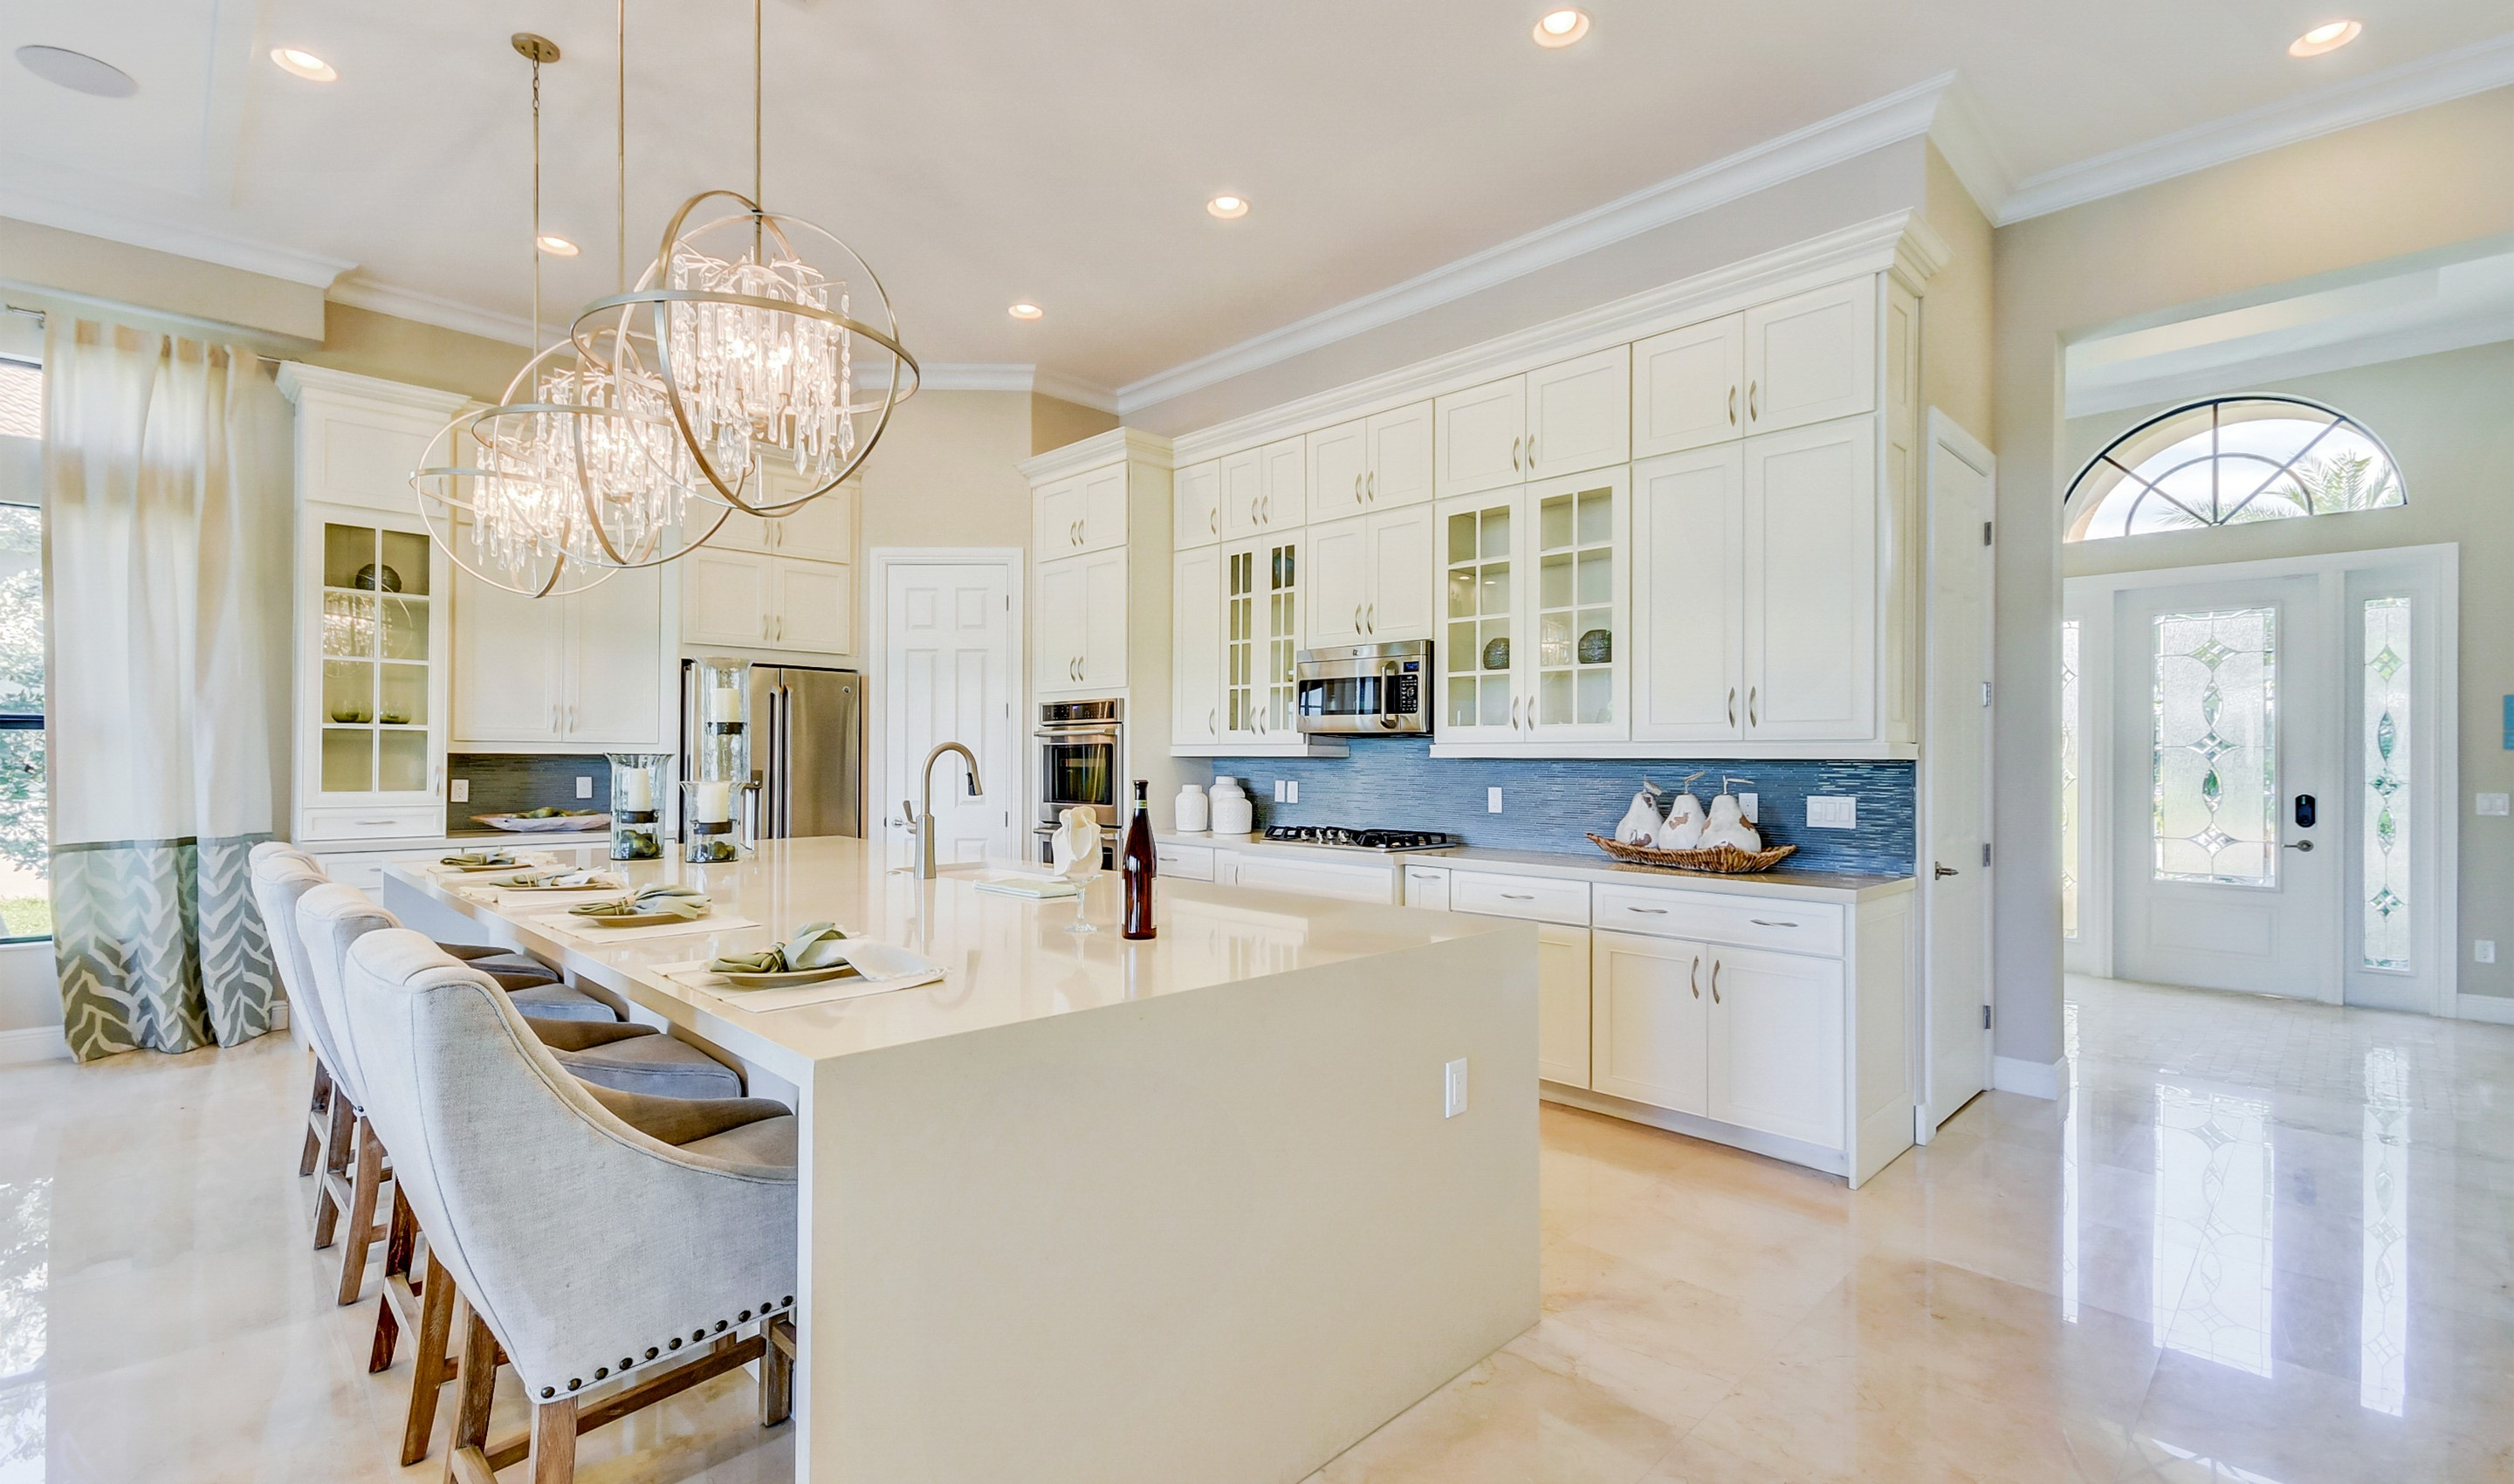 Striking kitchen with large island